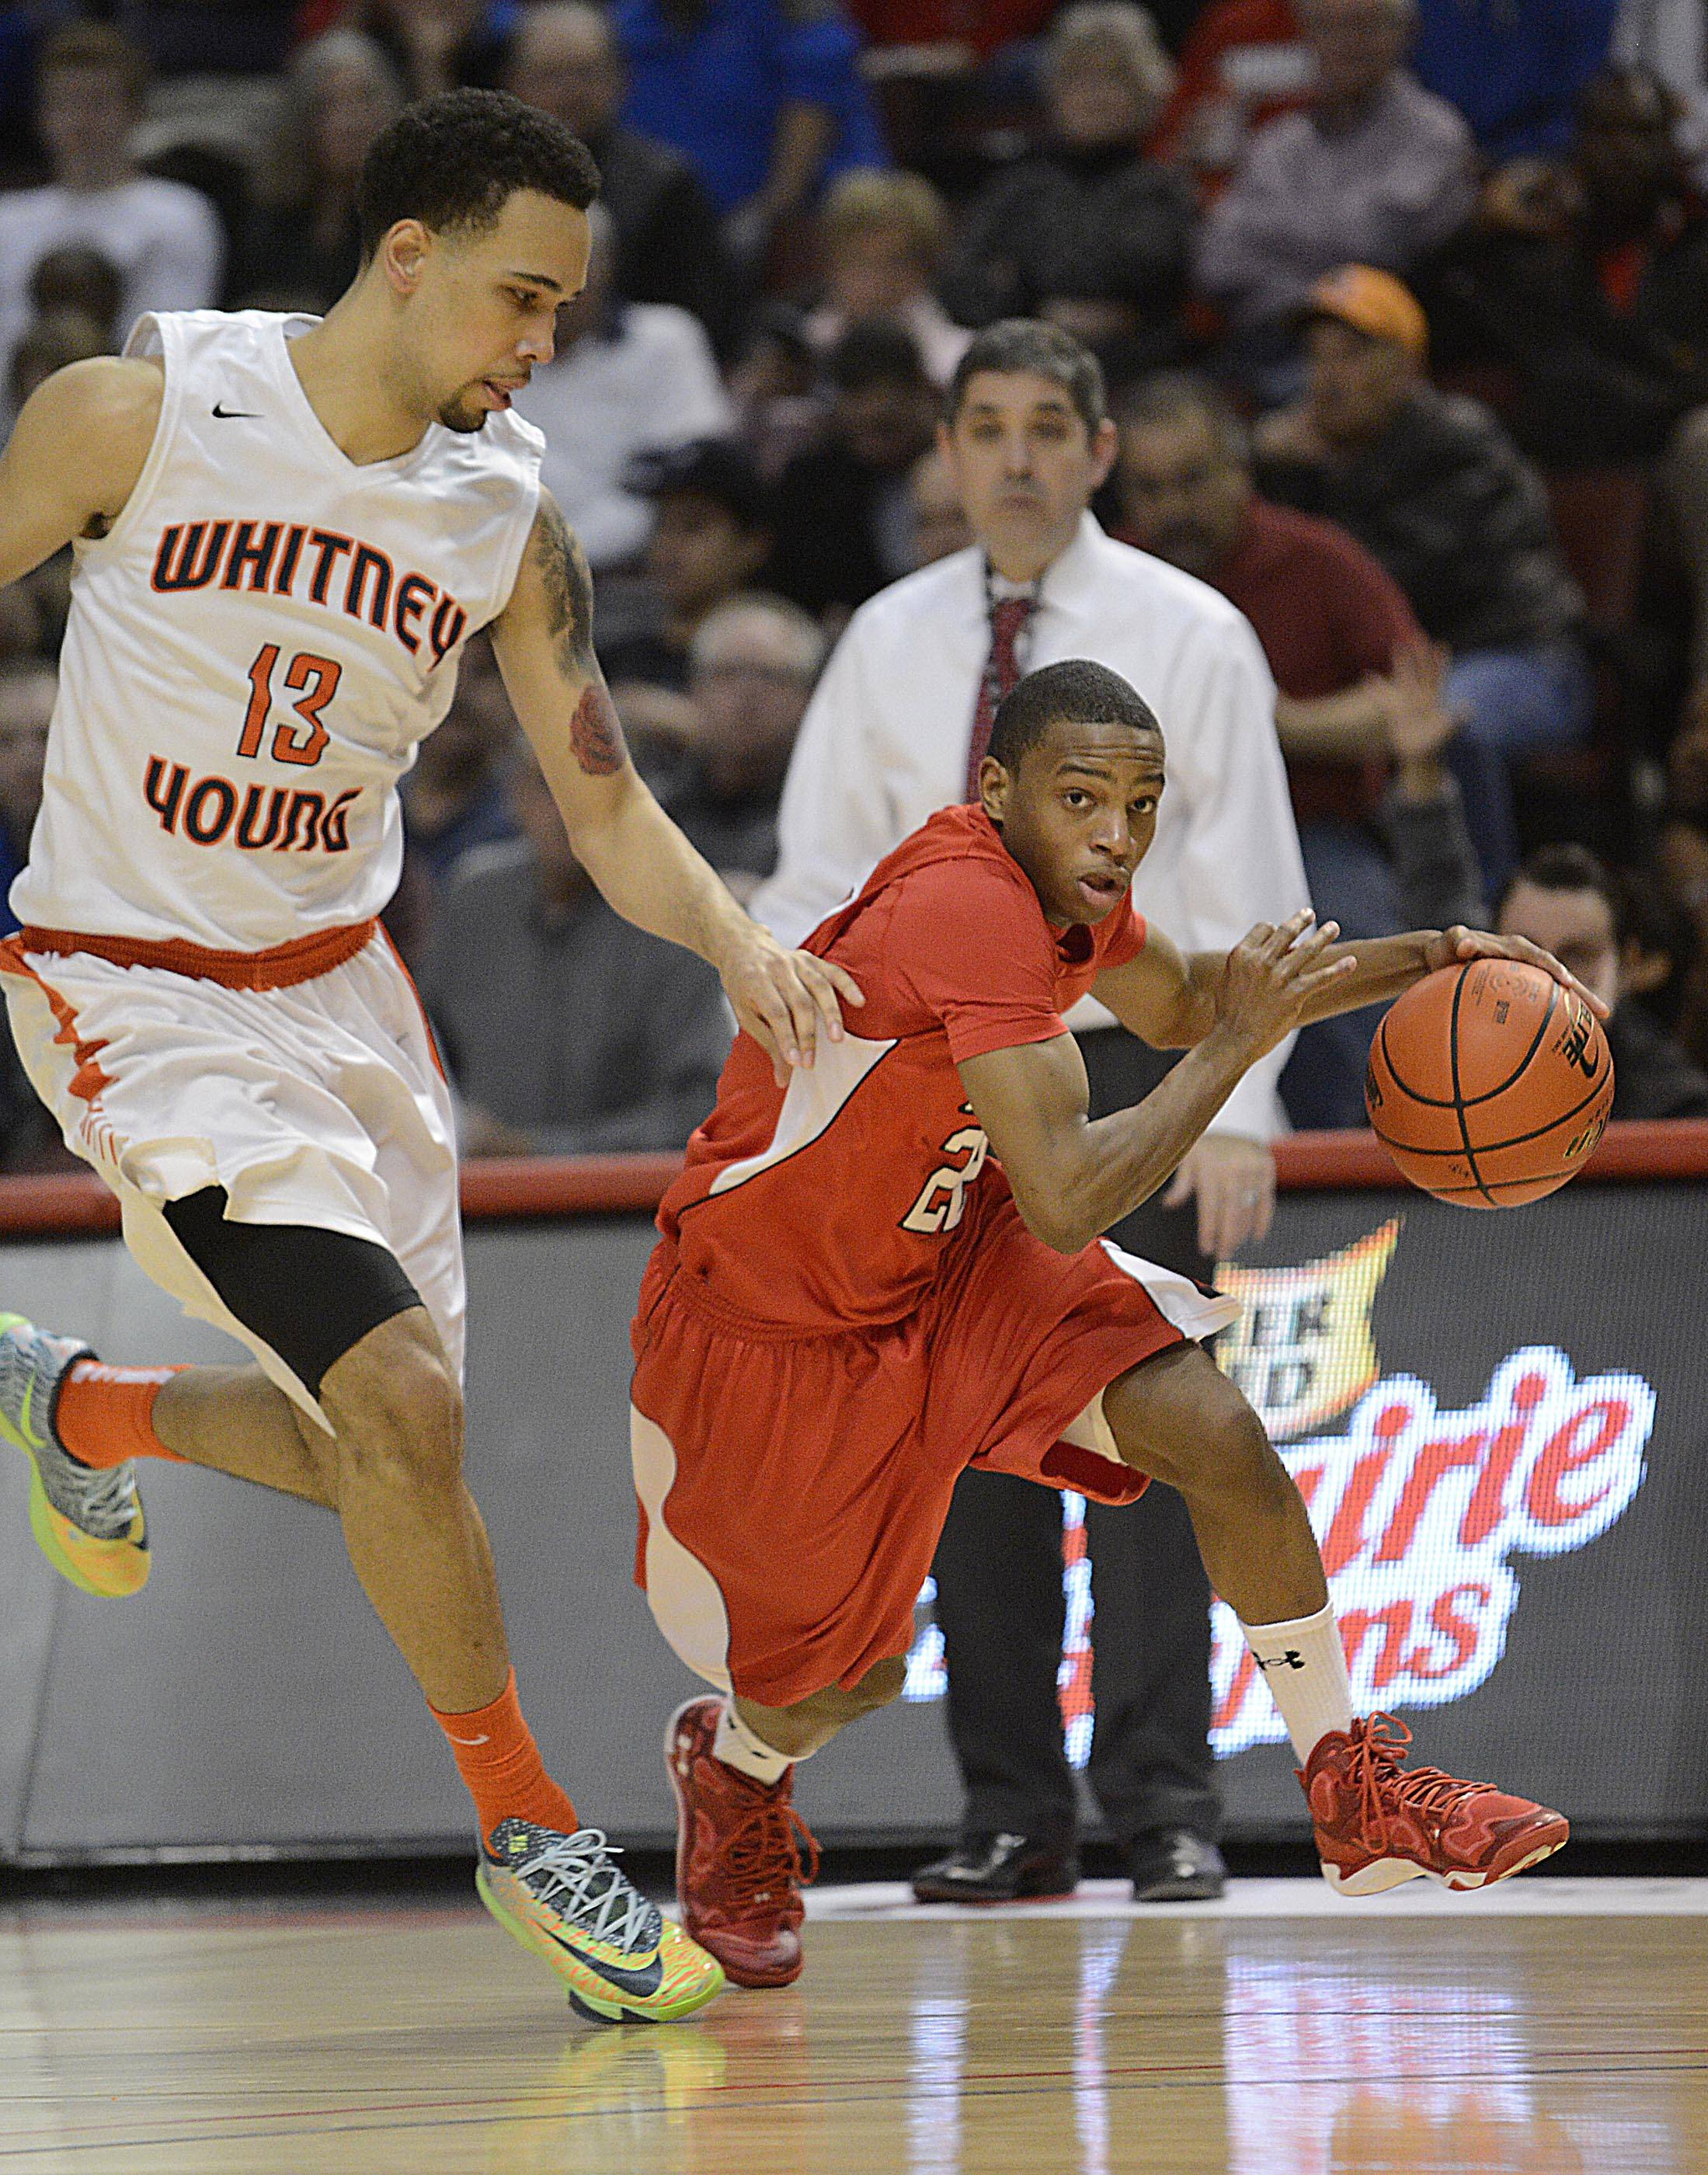 Images from the  Class 4A state championship boys basketball game  at Carver Arena in Peoria on Saturday, March 22, 2014.